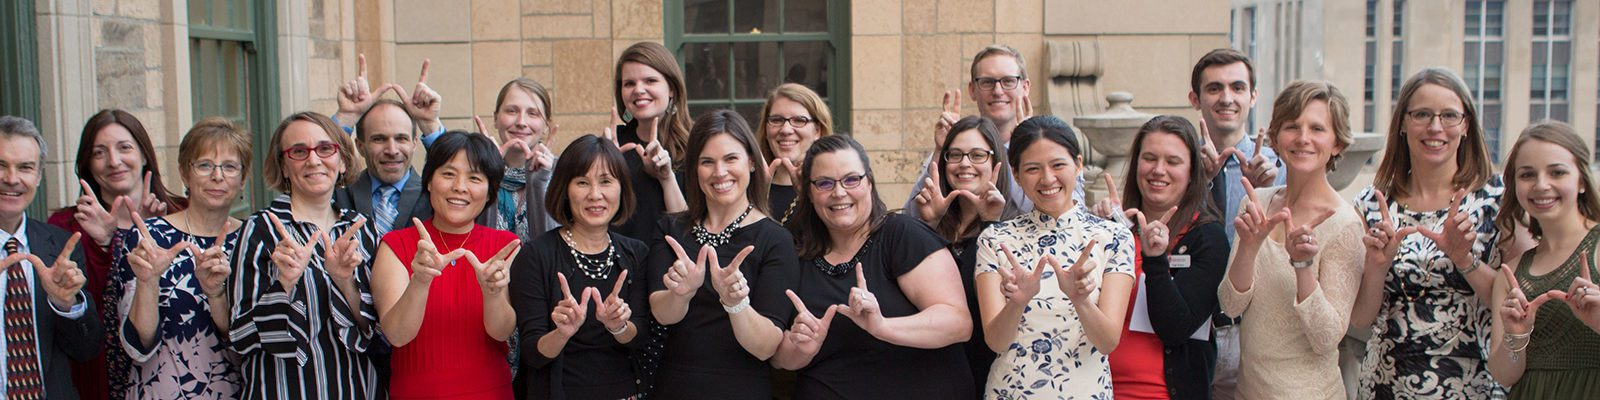 "Staff members from UW-Madison's Adult Career & Special Student Services office post making the ""W"" with their hands"